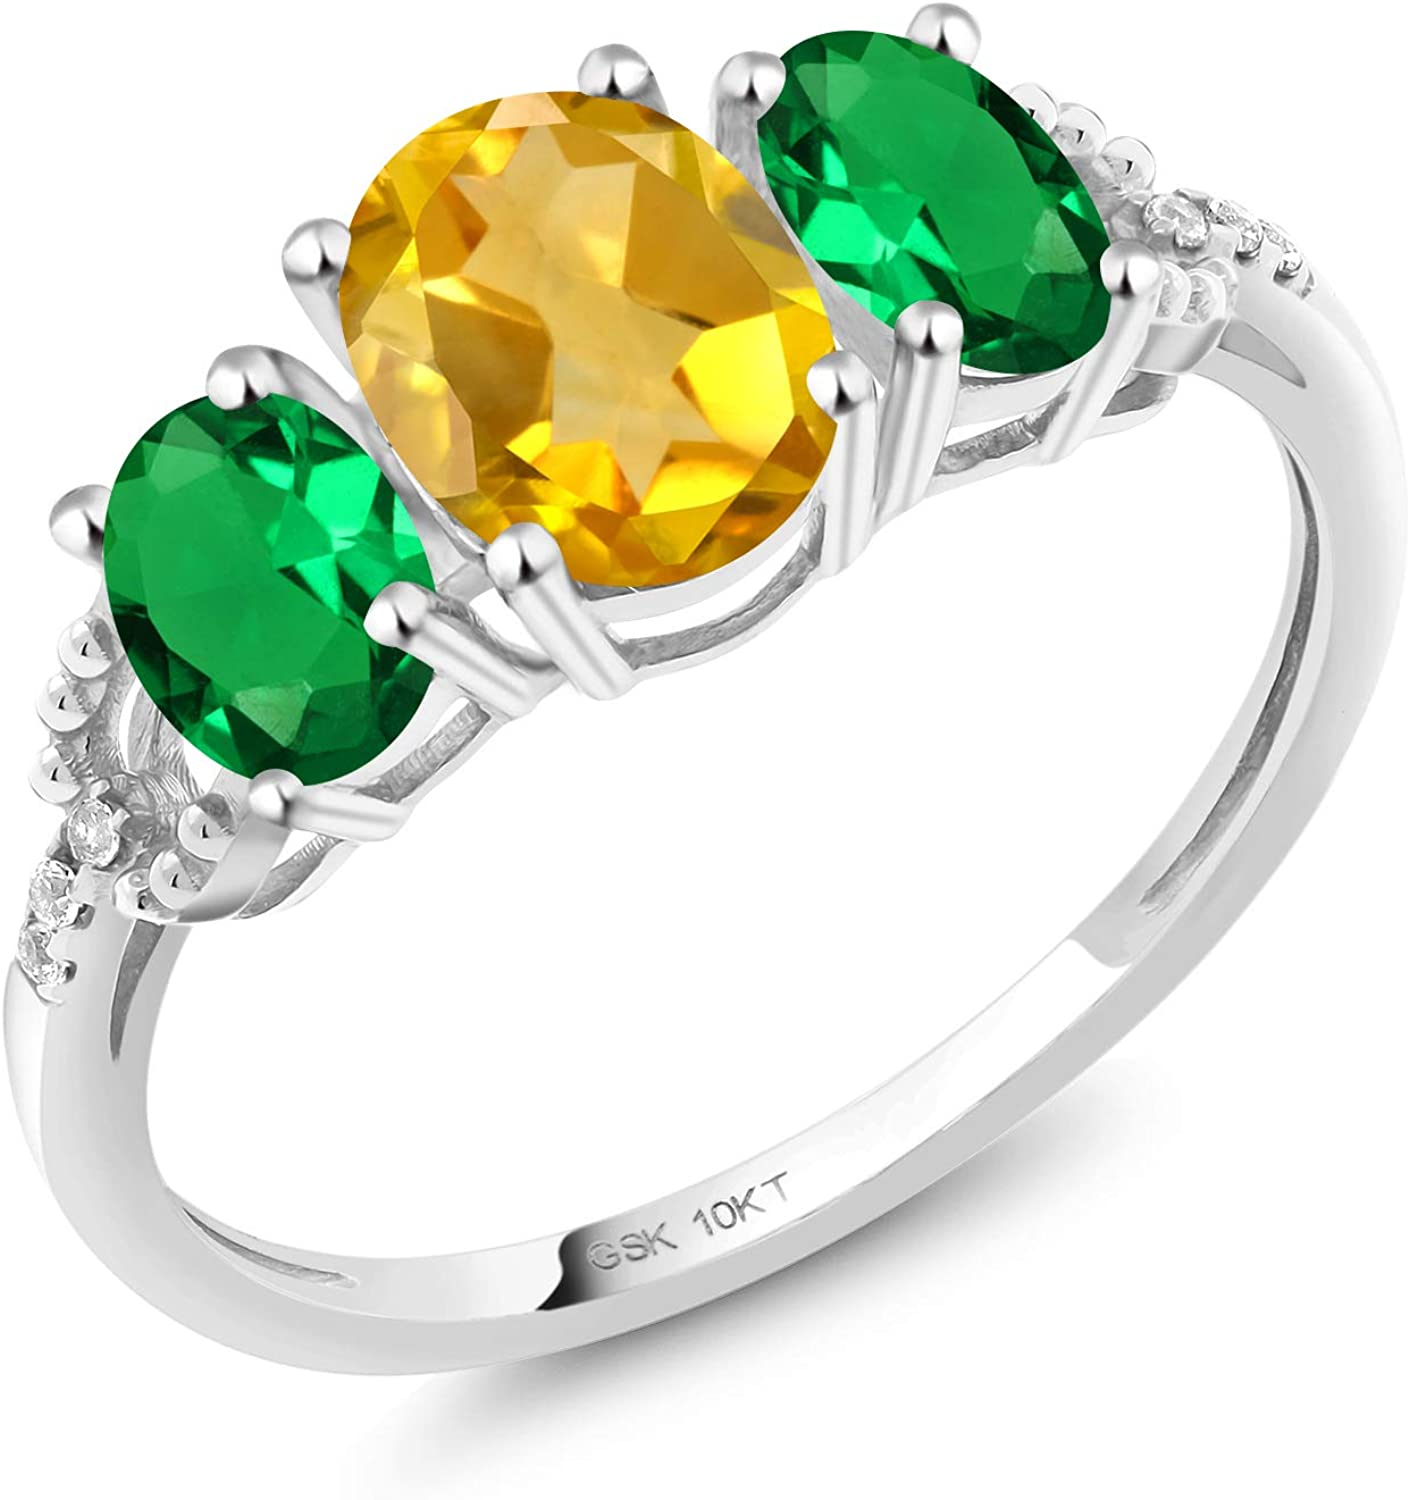 Gem Stone King Build Your Own Engagement Ring Oval Birthstones In 10k White Gold Engagement Ring Amazon Com